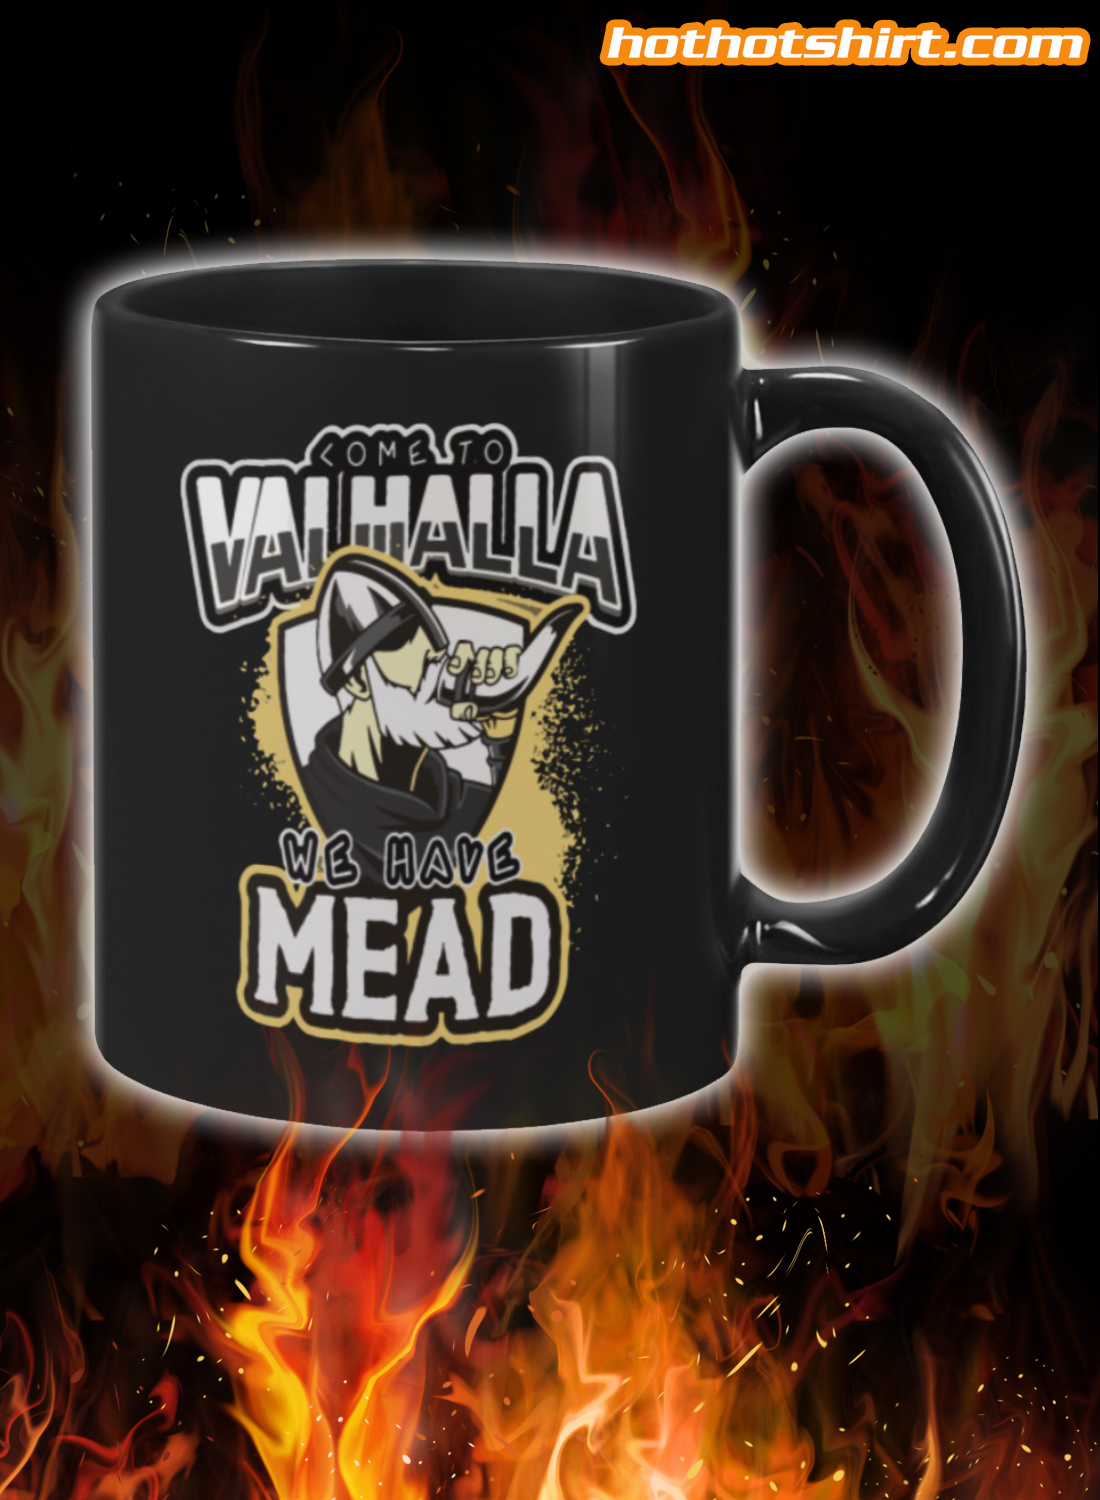 Come to valhalla we have mead mug